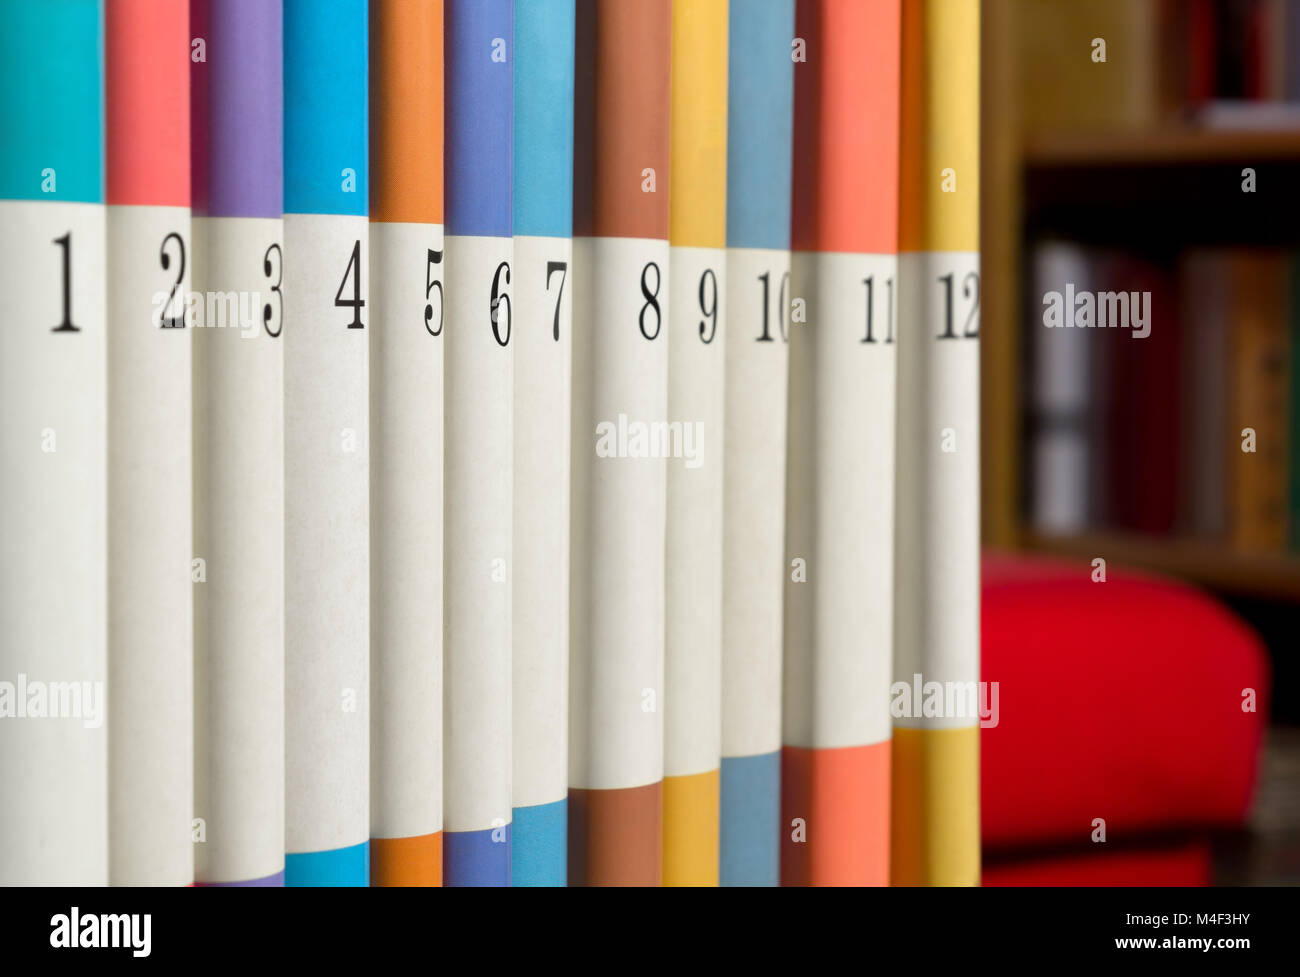 Twelve numbered books in a row with a bookcase and a red sofa in the background - Stock Image